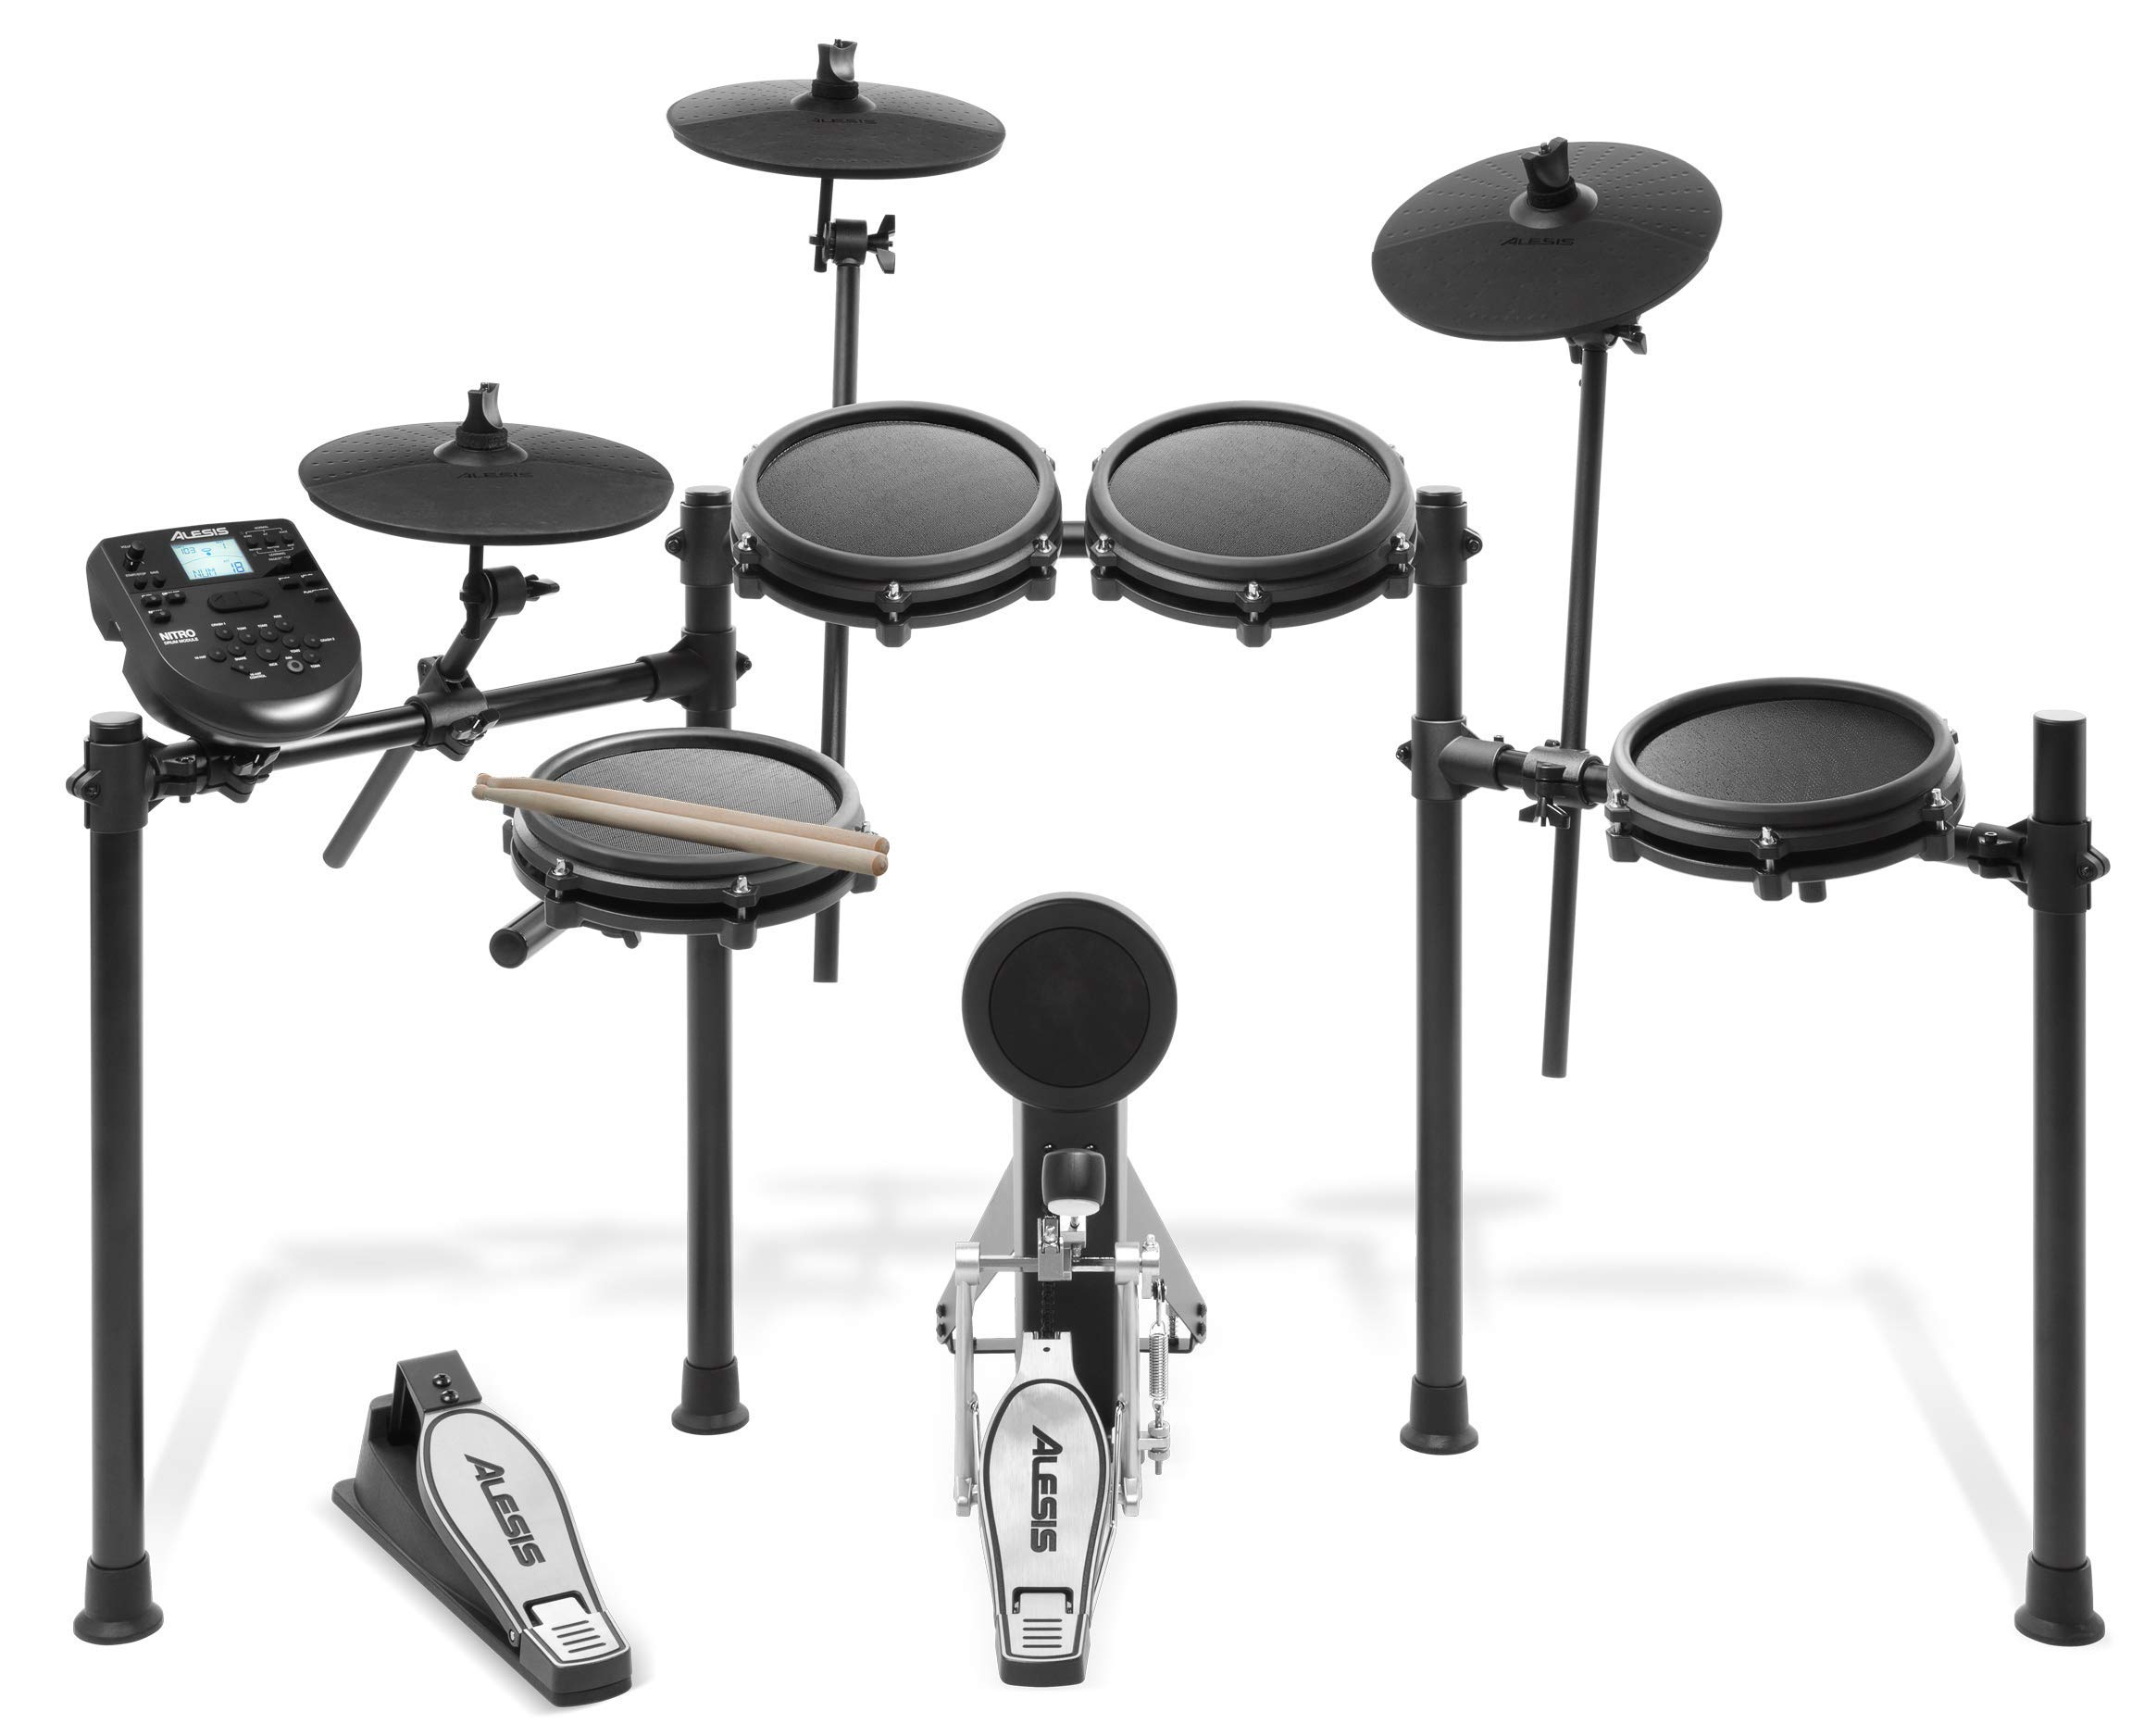 Nitro Mesh Kit - Eight-Piece Electronic Drum Kit with Mesh Heads by Alesis